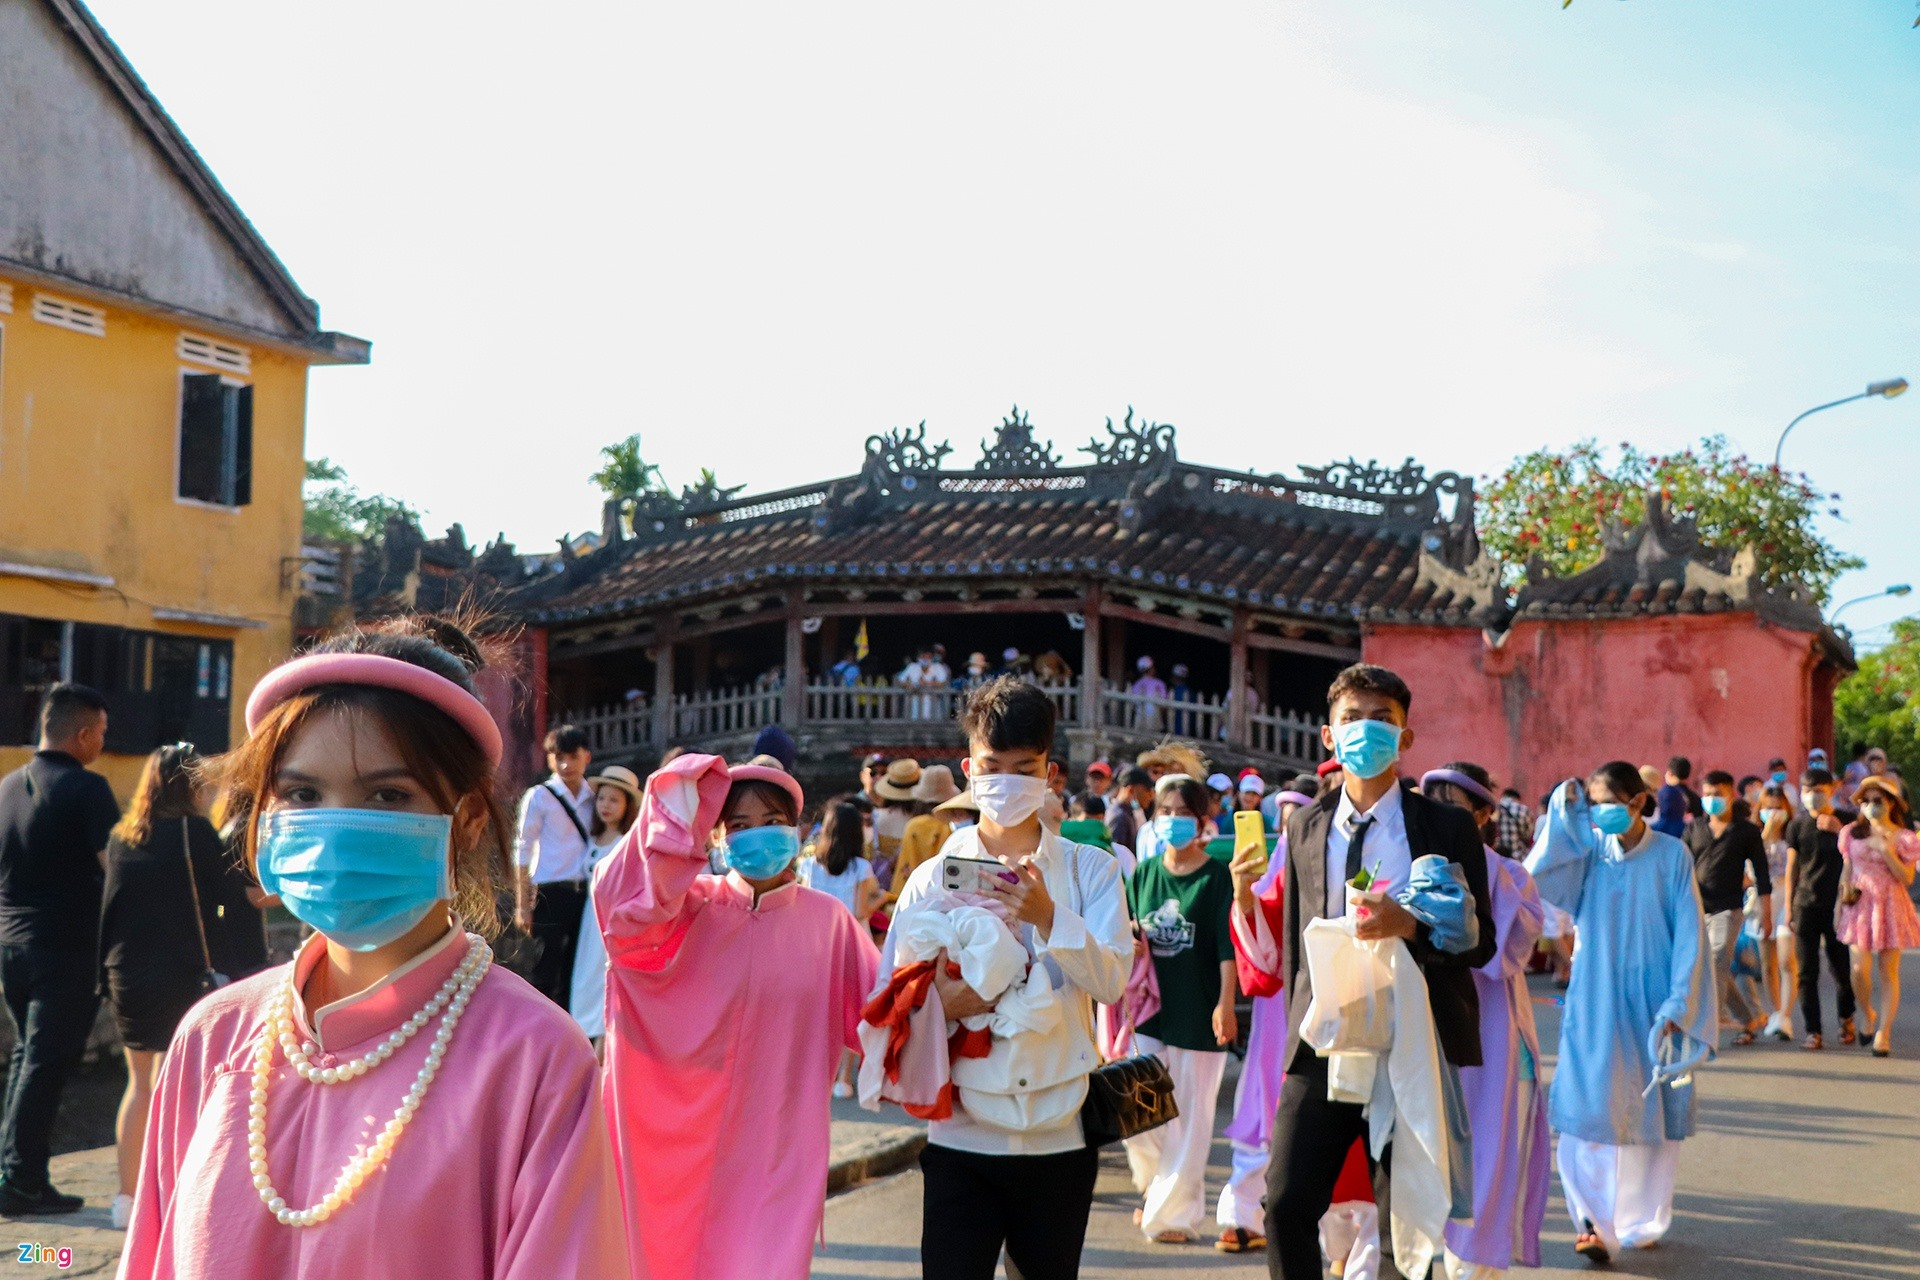 The area of Japanese Bridge is very crowded with visitors. All of them obey wearing face masks.